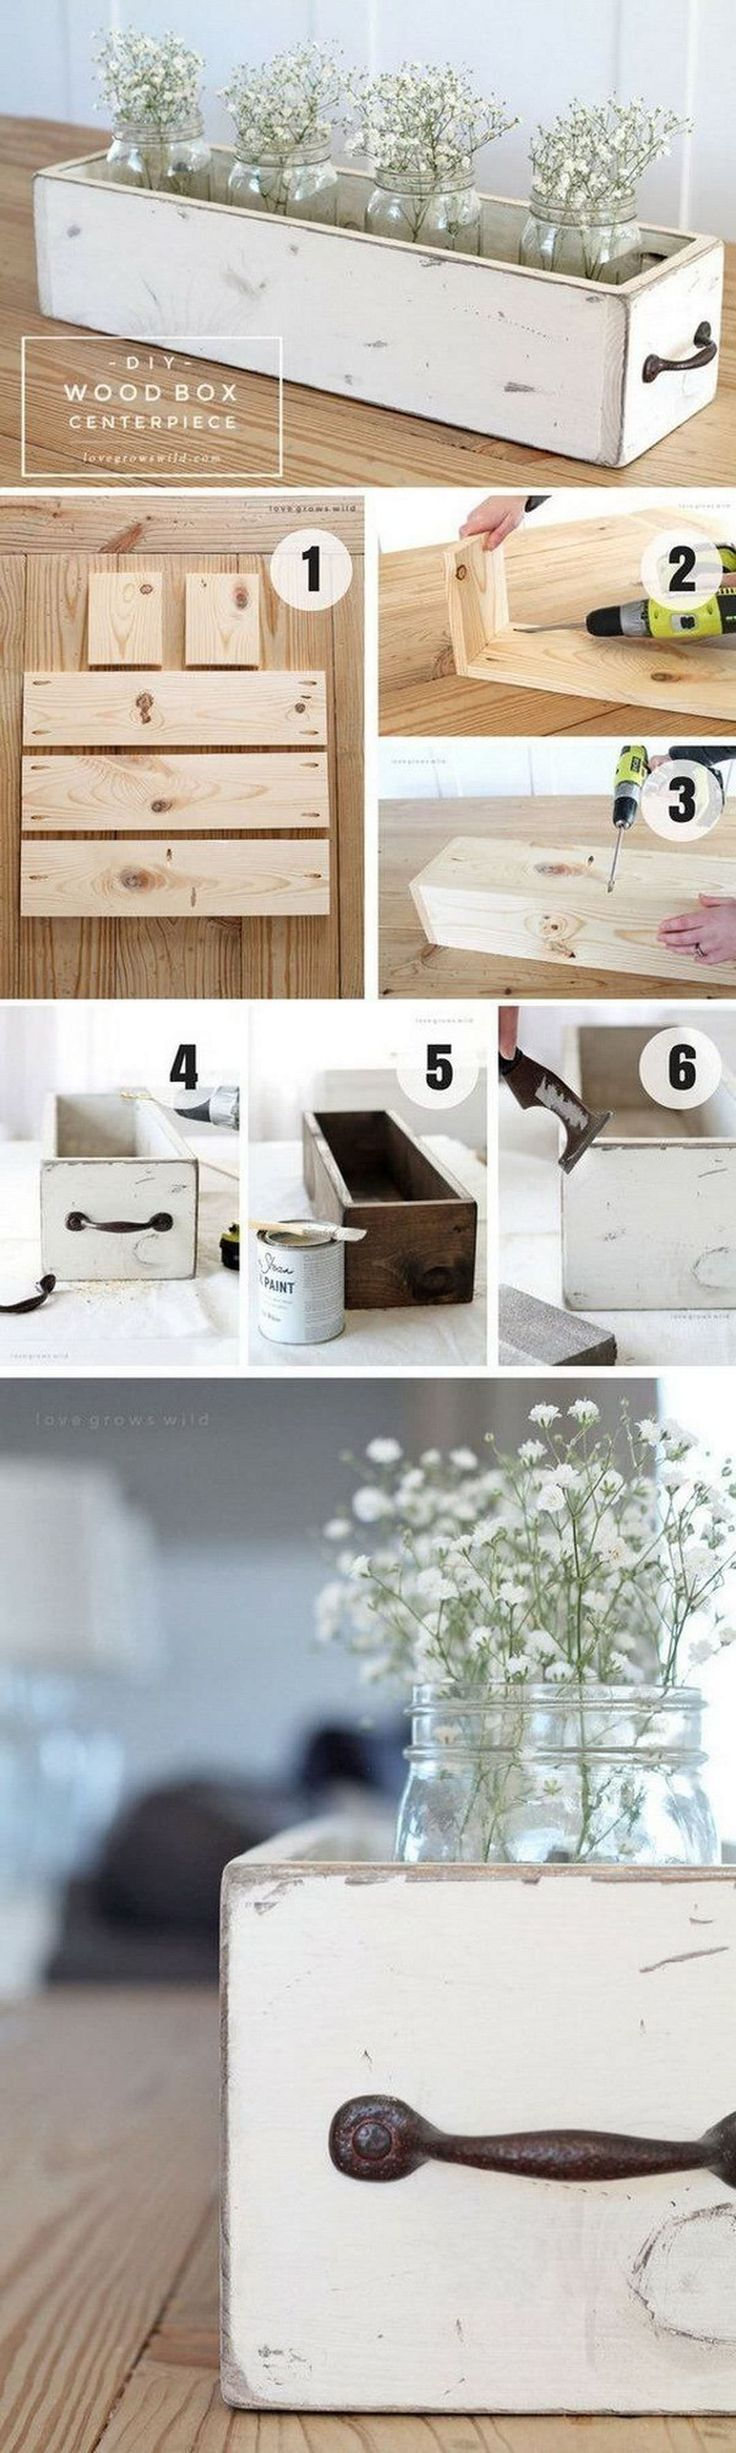 Farmhouse Decor - Country Decorating Ideas - Primitive decor #rusticfarmhouse